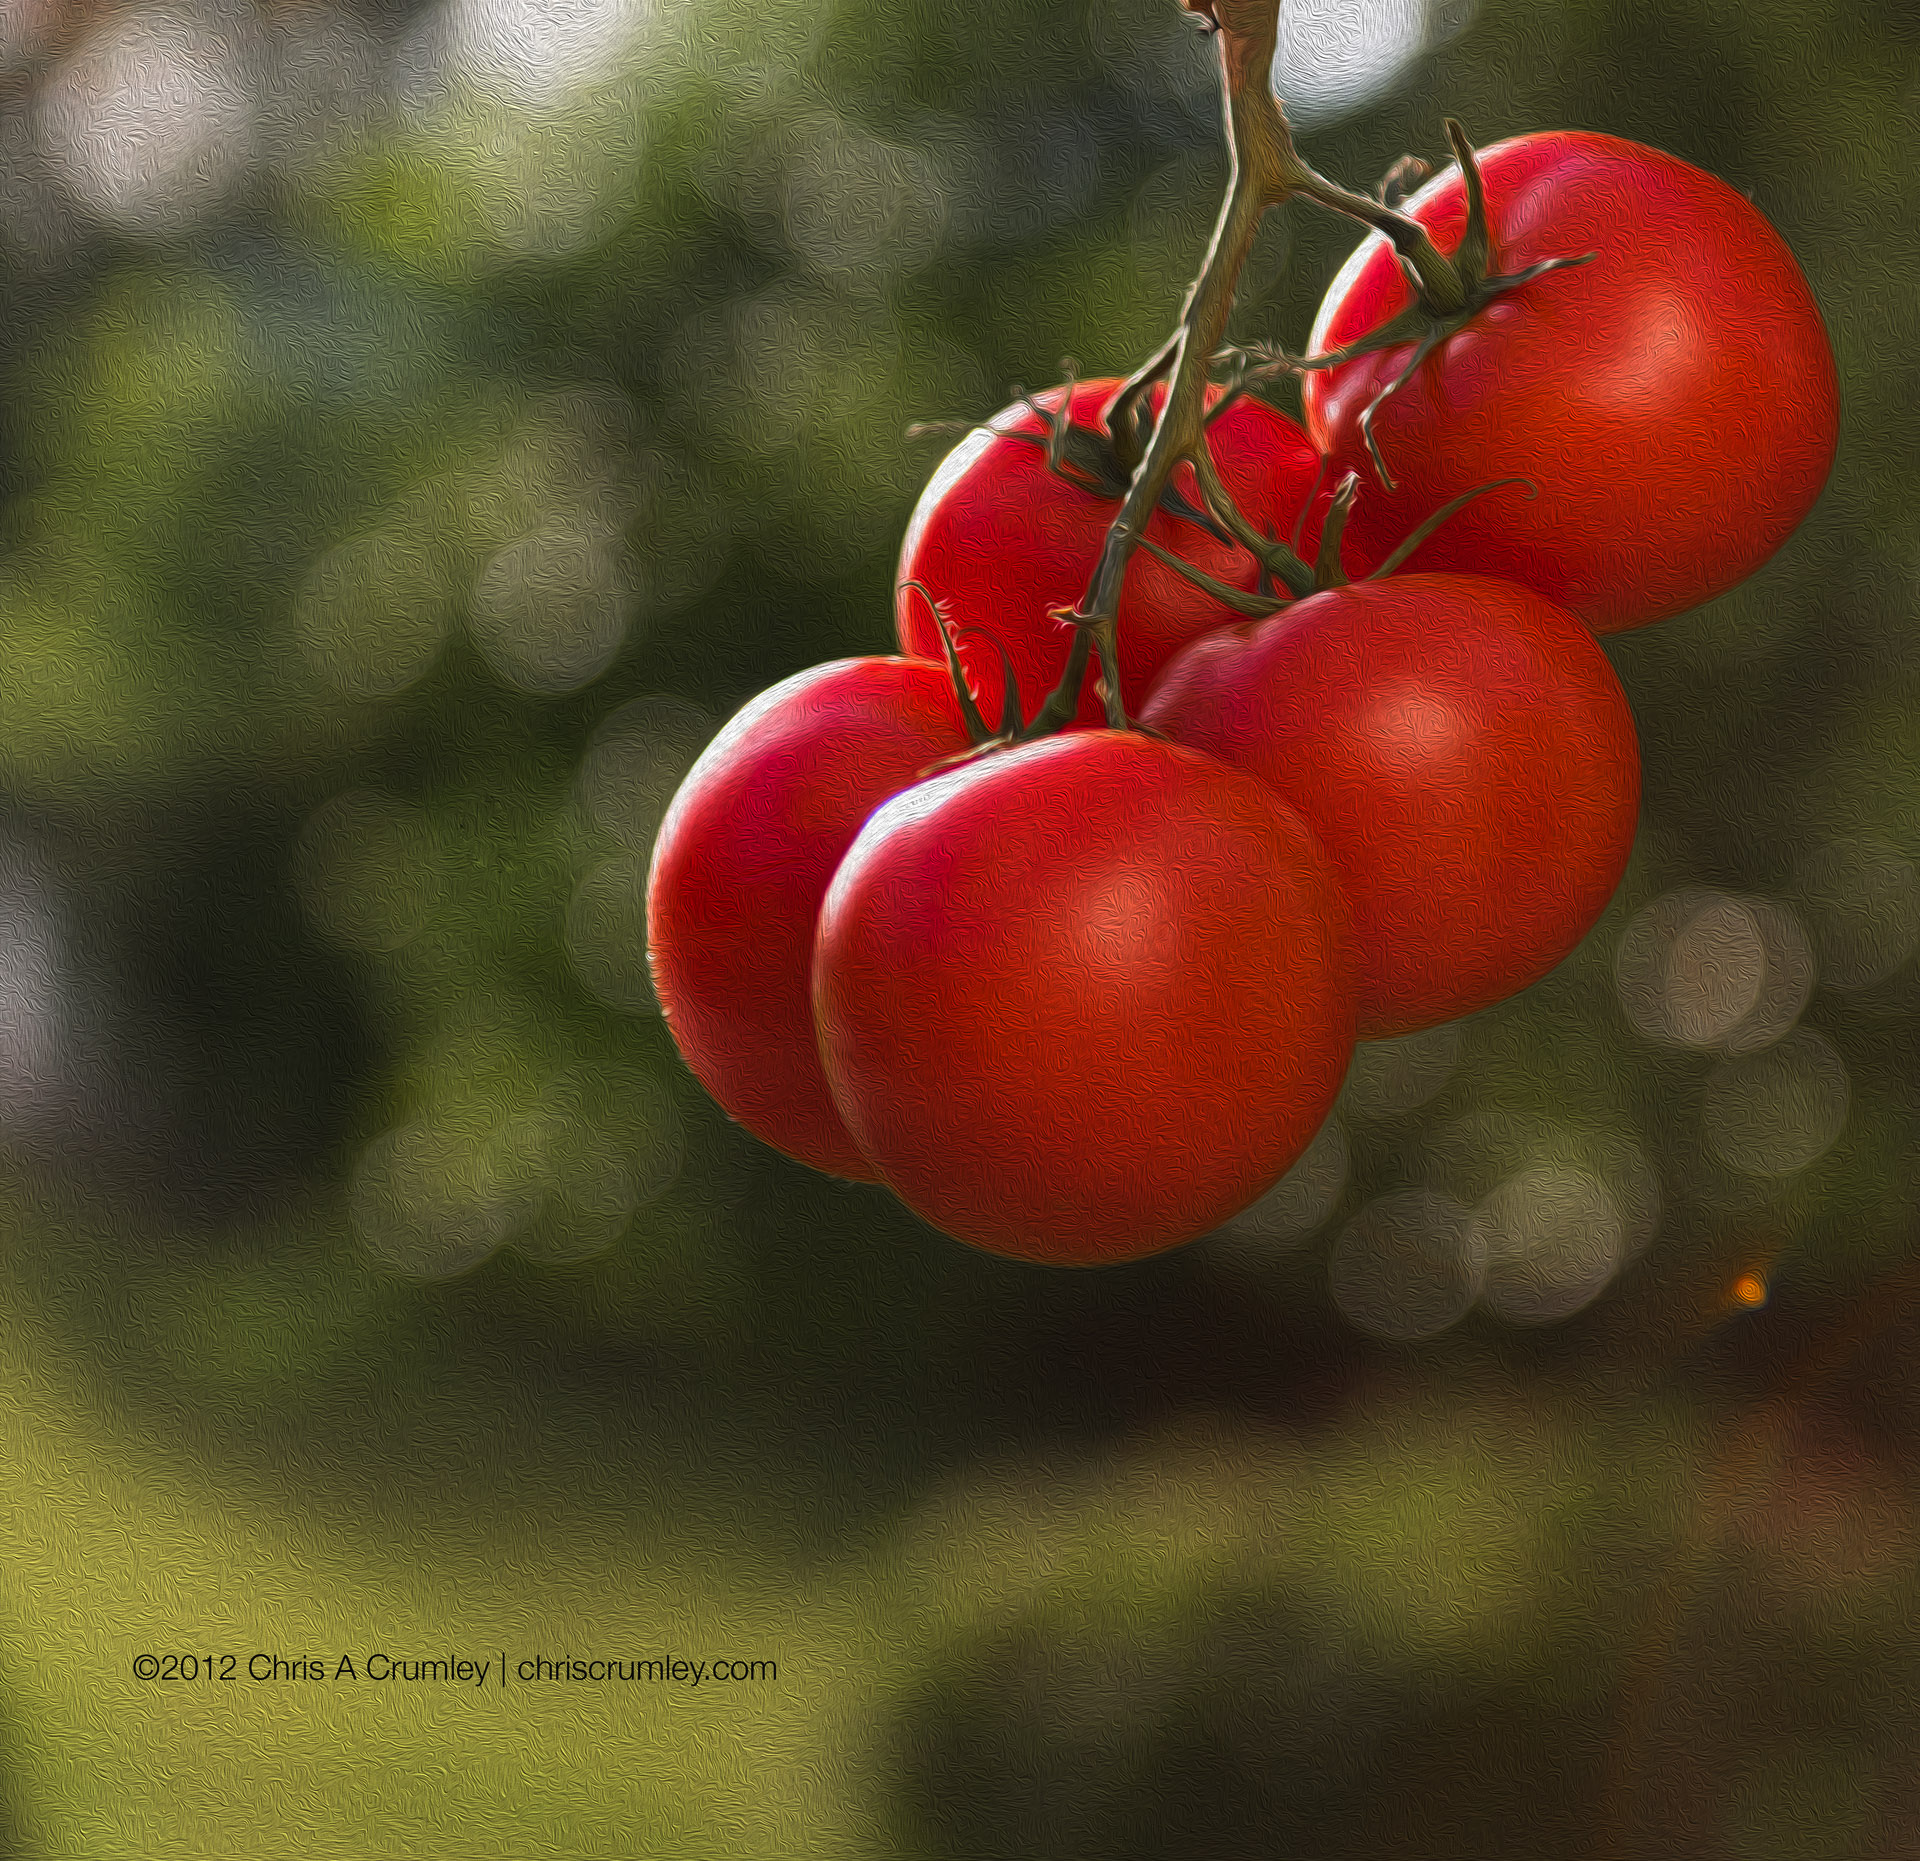 Red Period - Tomatoes